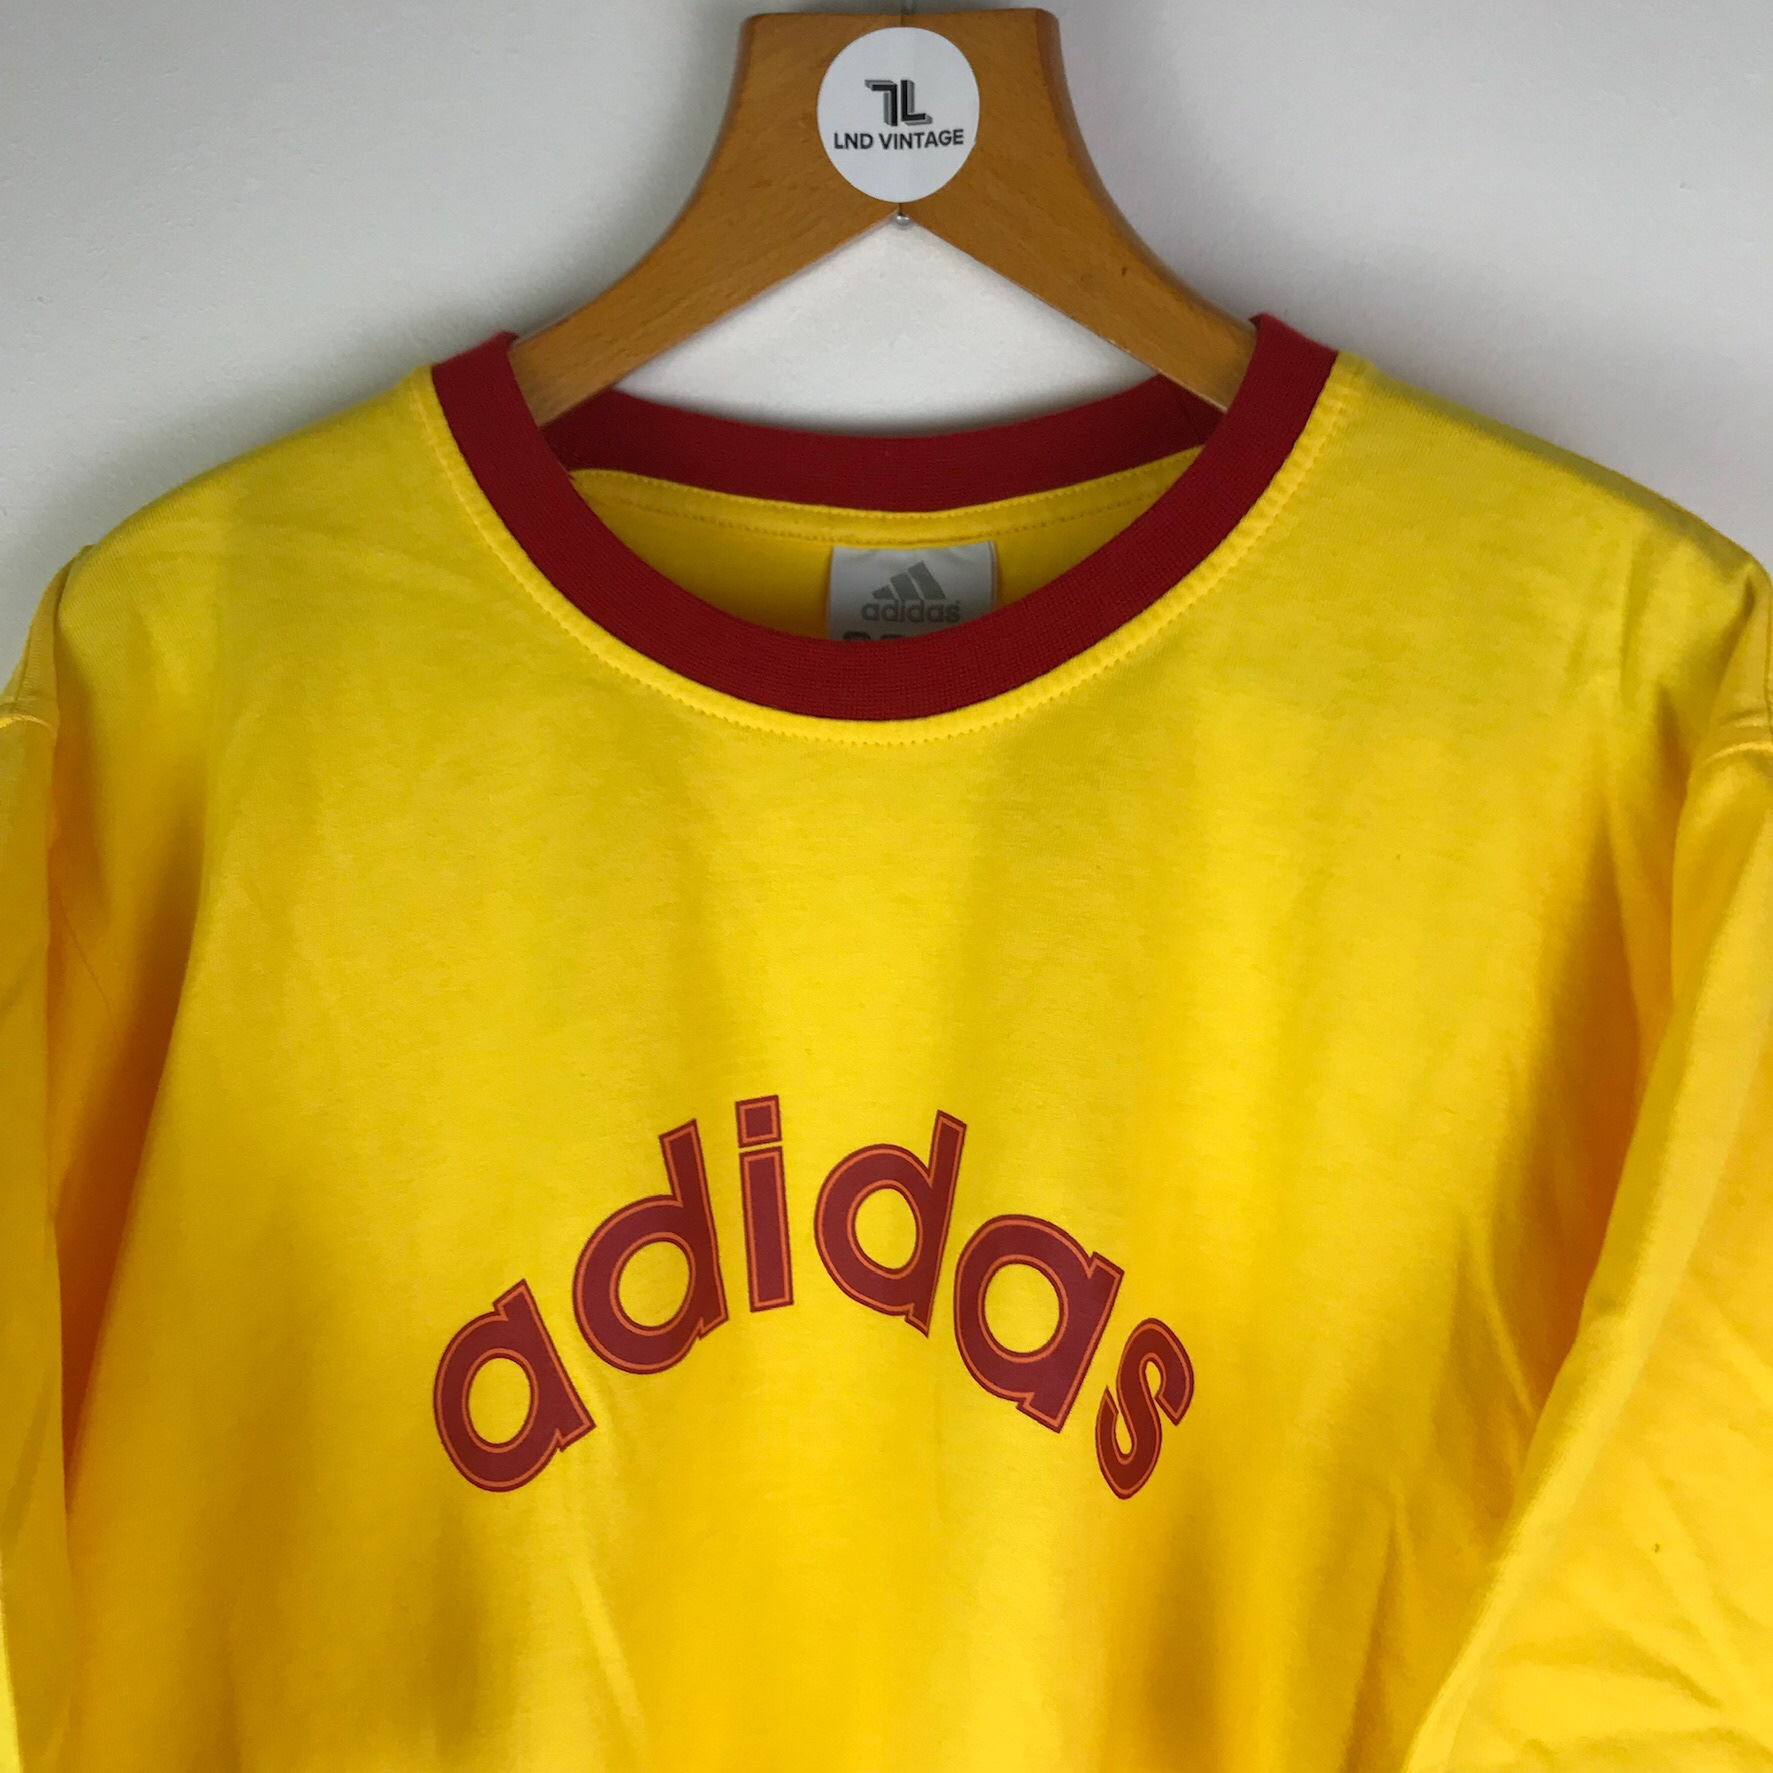 Vintage Adidas T Shirt in red and yellow Large Depop